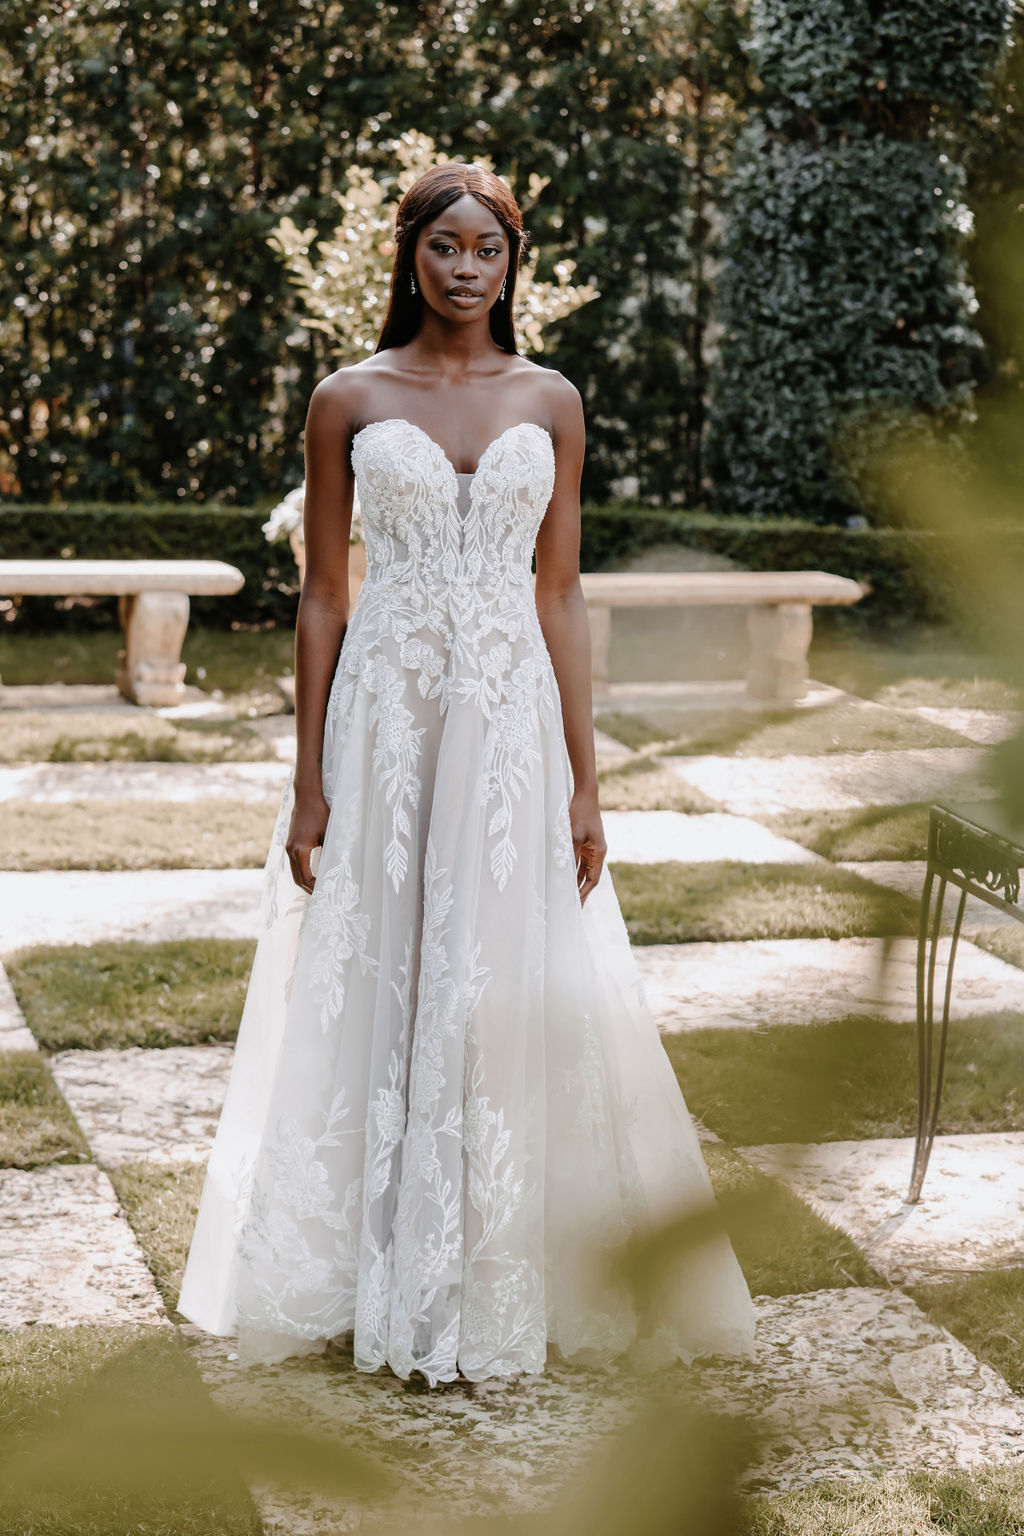 Adorned with mirrored symmetrical beaded appliques, this strapless A-line gown is beautifully unique.